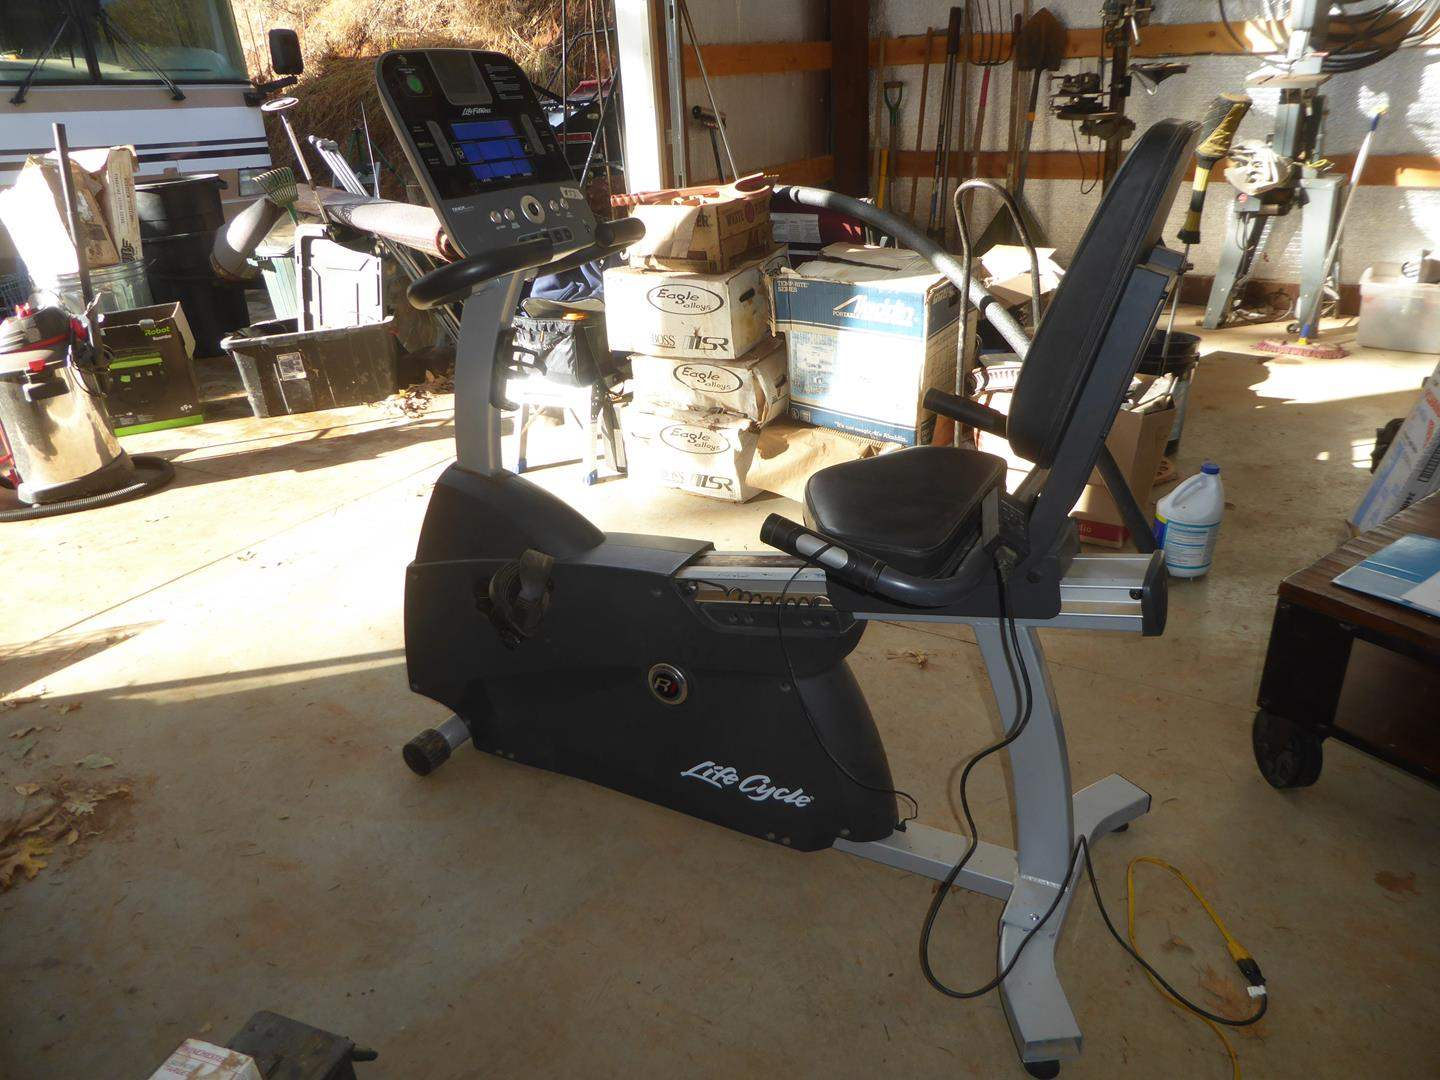 Lot # 53 - Life Cycle Track Console Exercise Bike